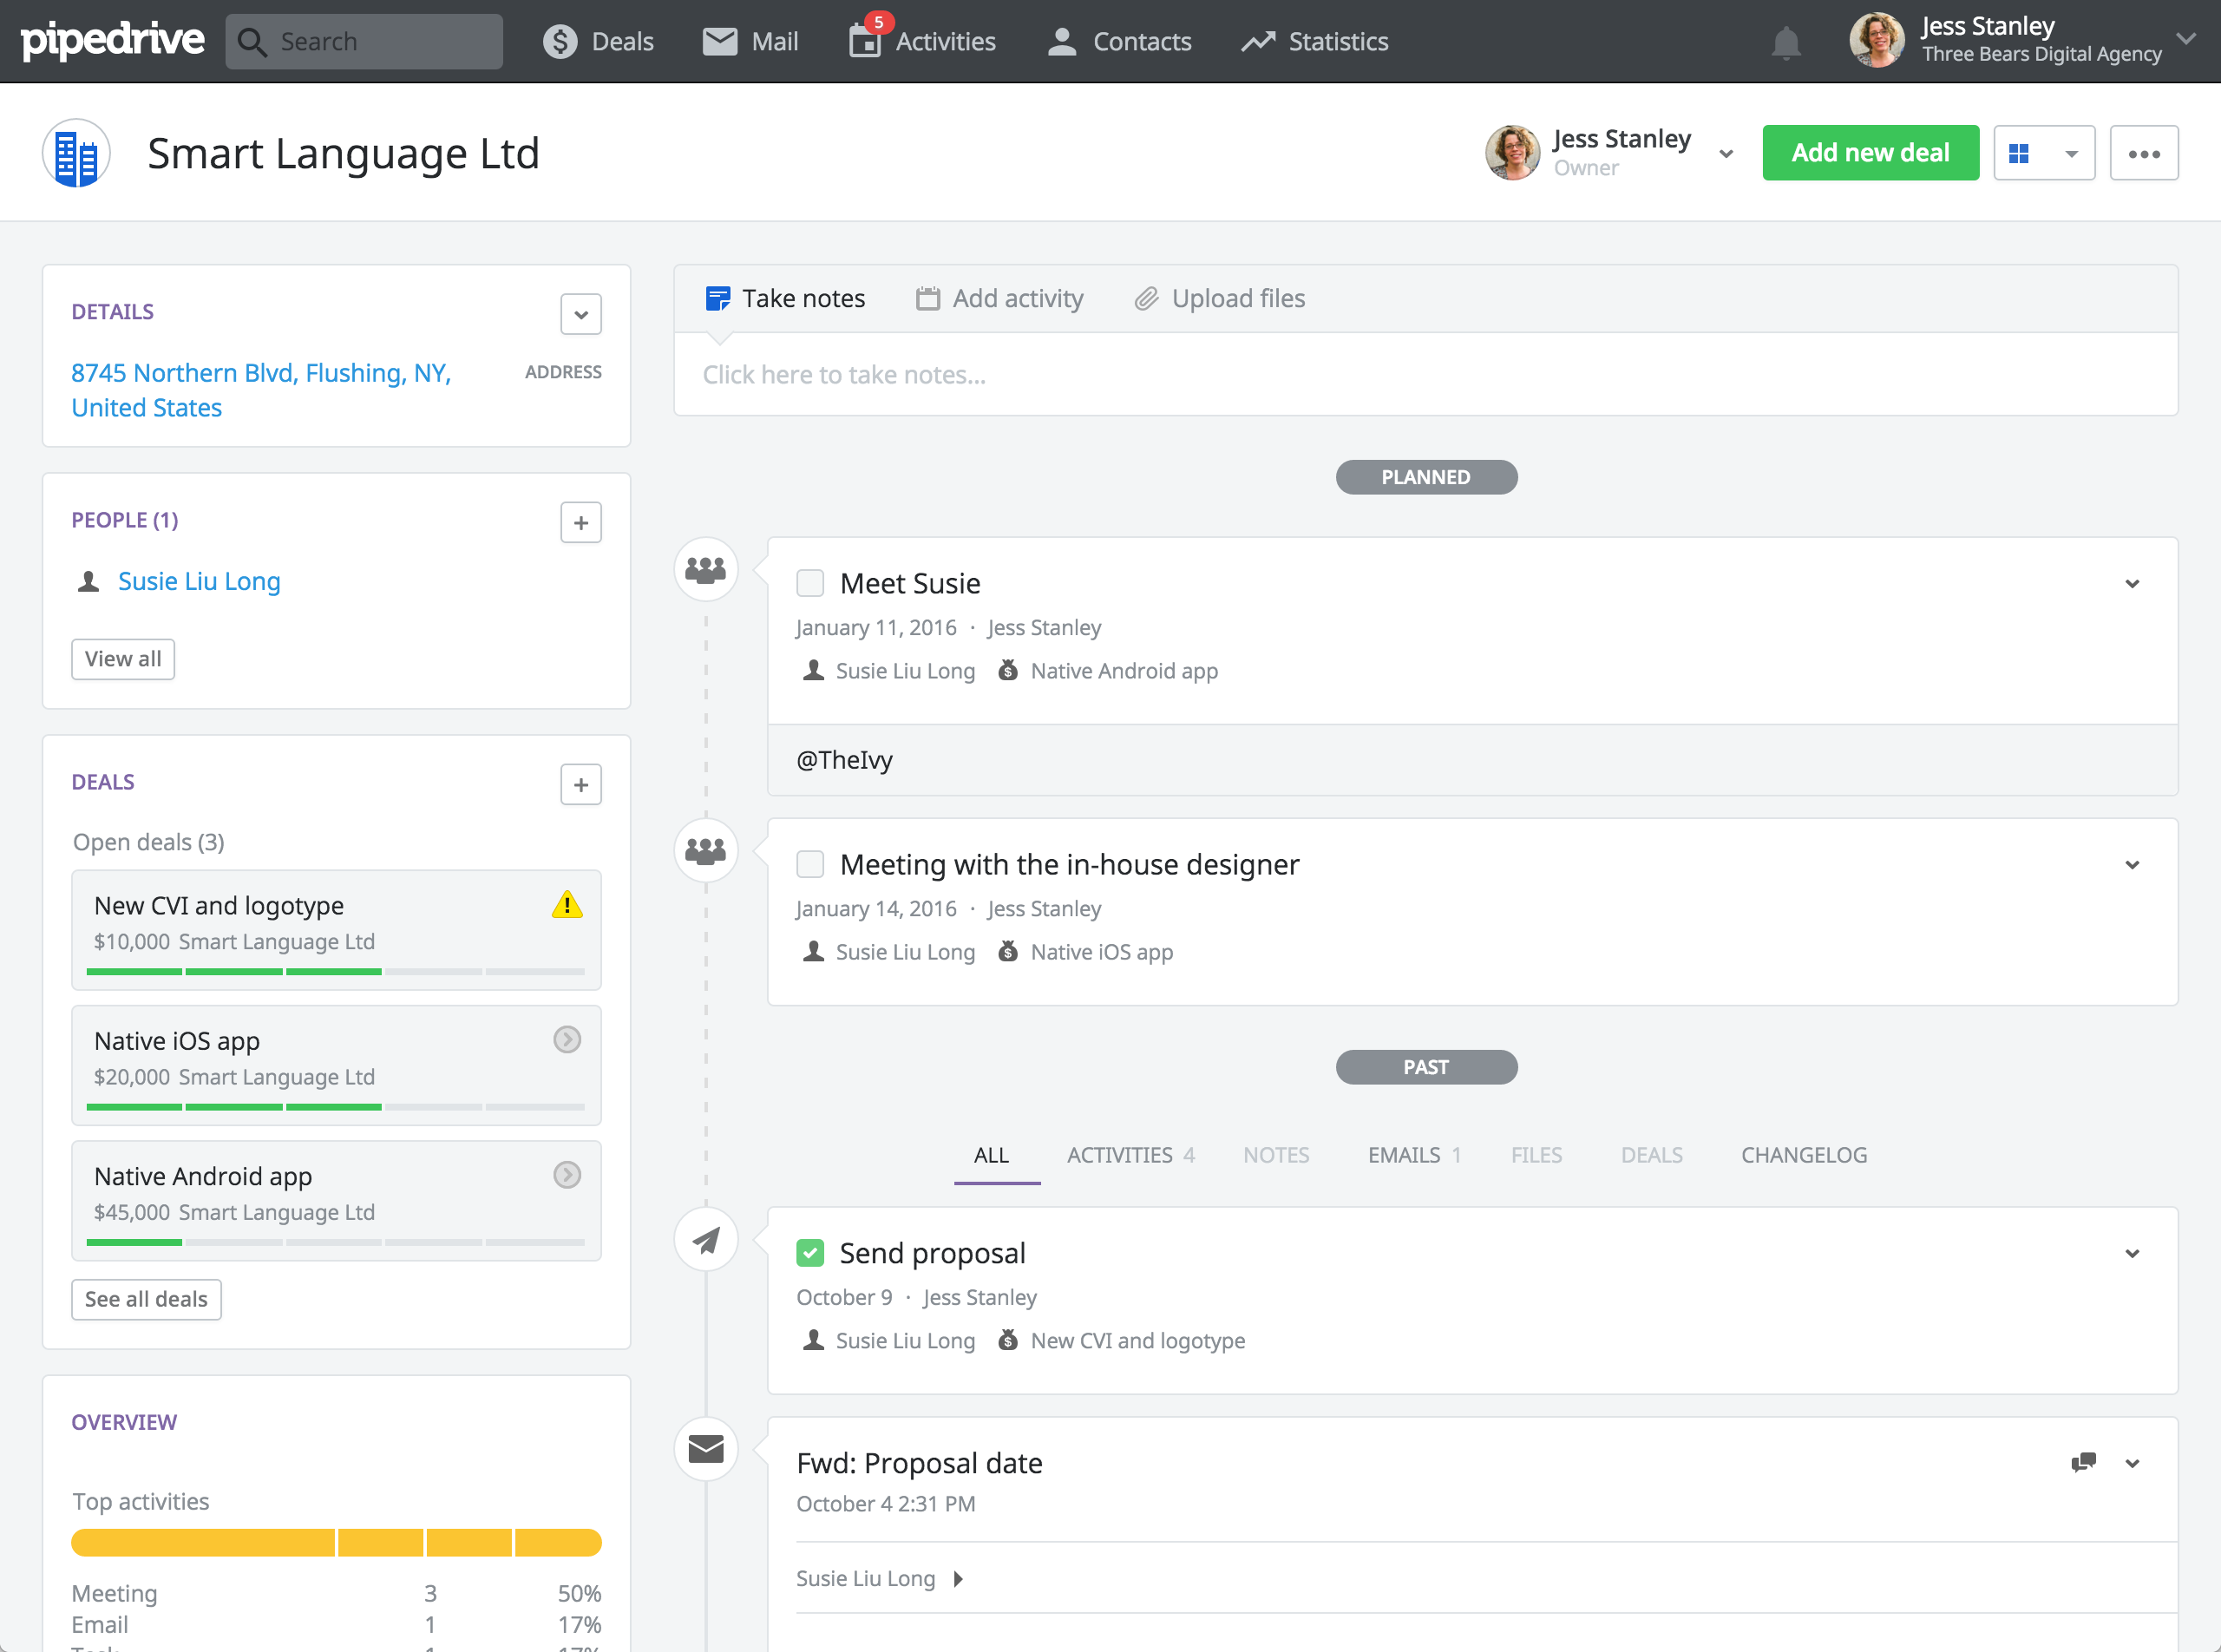 Pipedrive Software - 5